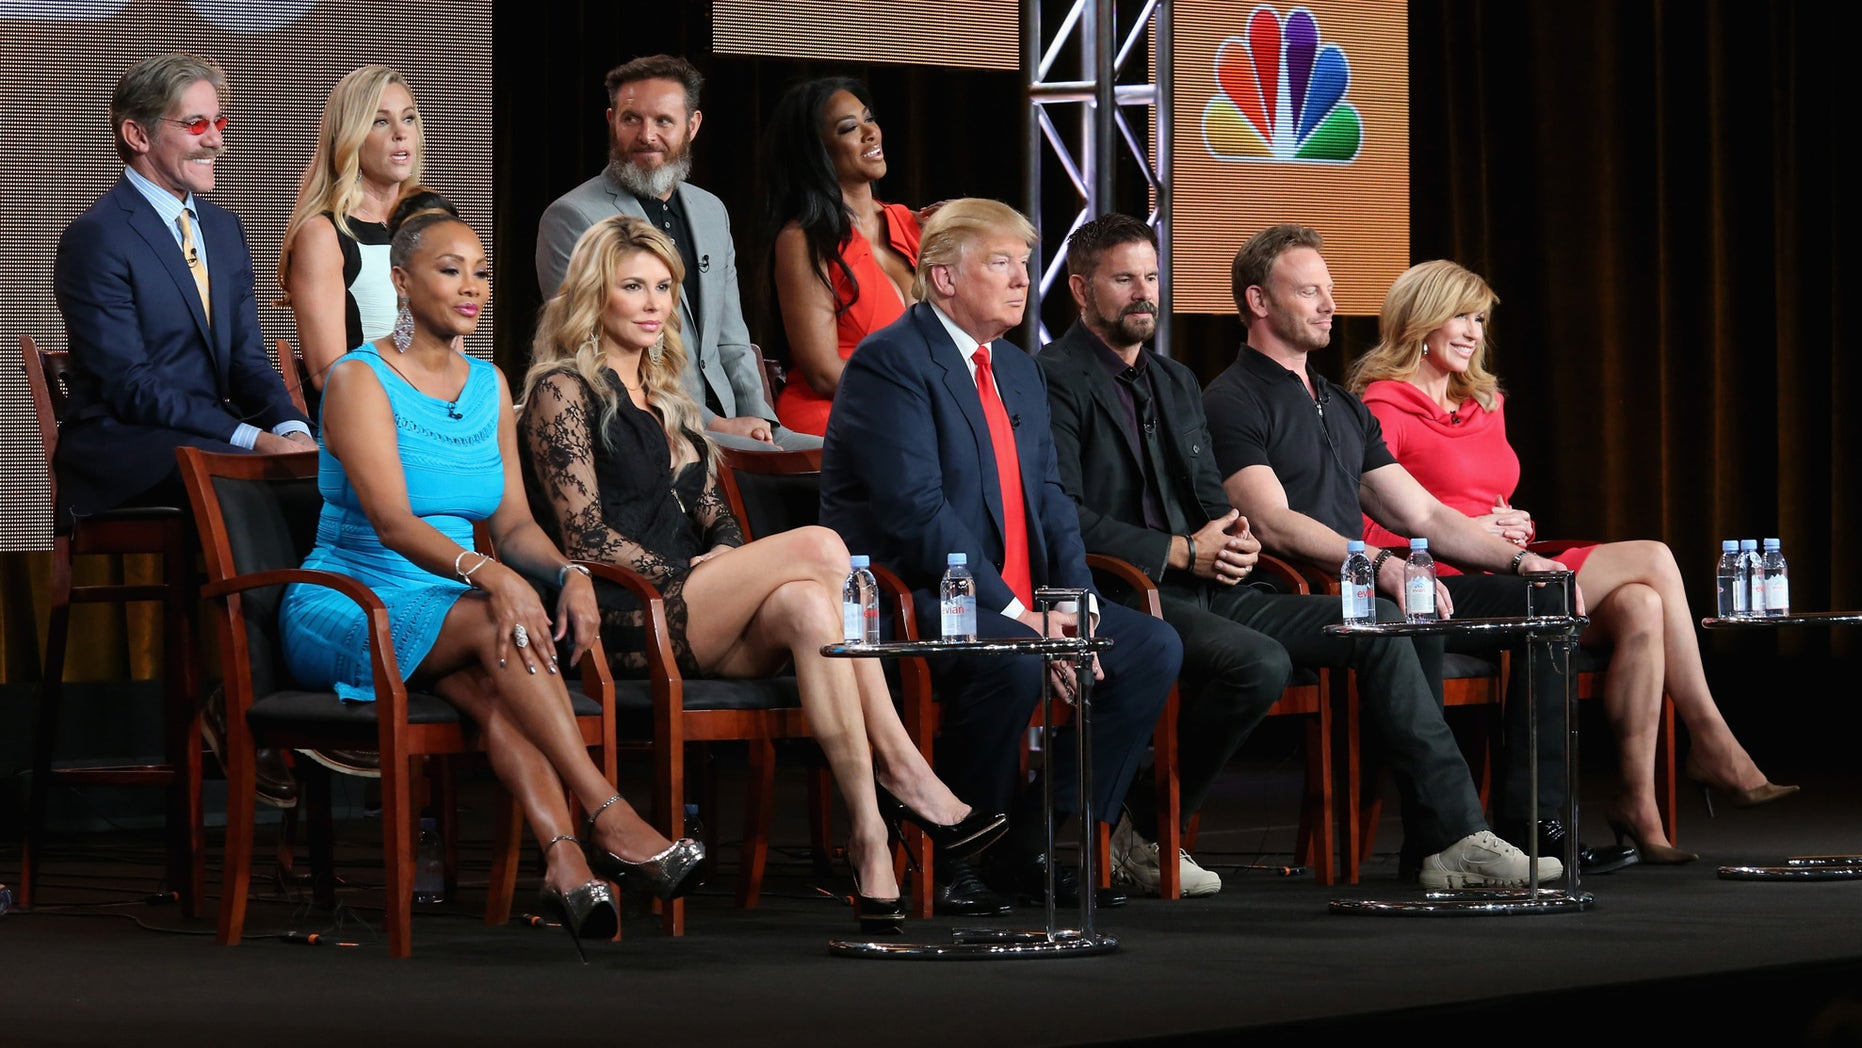 PASADENA, CA - JANUARY 16:  (L-R top row) Geraldo Rivera, TV personality Kate Gosselin, executive producer Mark Burnett and actress Kenya Moore. (L-R bottom row) Actress Vivica A. Fox, TV personality Brandi Glanville, executive producer/host Donald Trump, actor Lorenzo Lamas, actor Ian Ziering and Tv personality Leeza Gibbons speak onstage during the 'The Celebrity Apprentice' panel discussion at the NBC/Universal portion of the 2015 Winter TCA Tour at the Langham Hotel on January 16, 2015 in Pasadena, California.  (Photo by Frederick M. Brown/Getty Images)